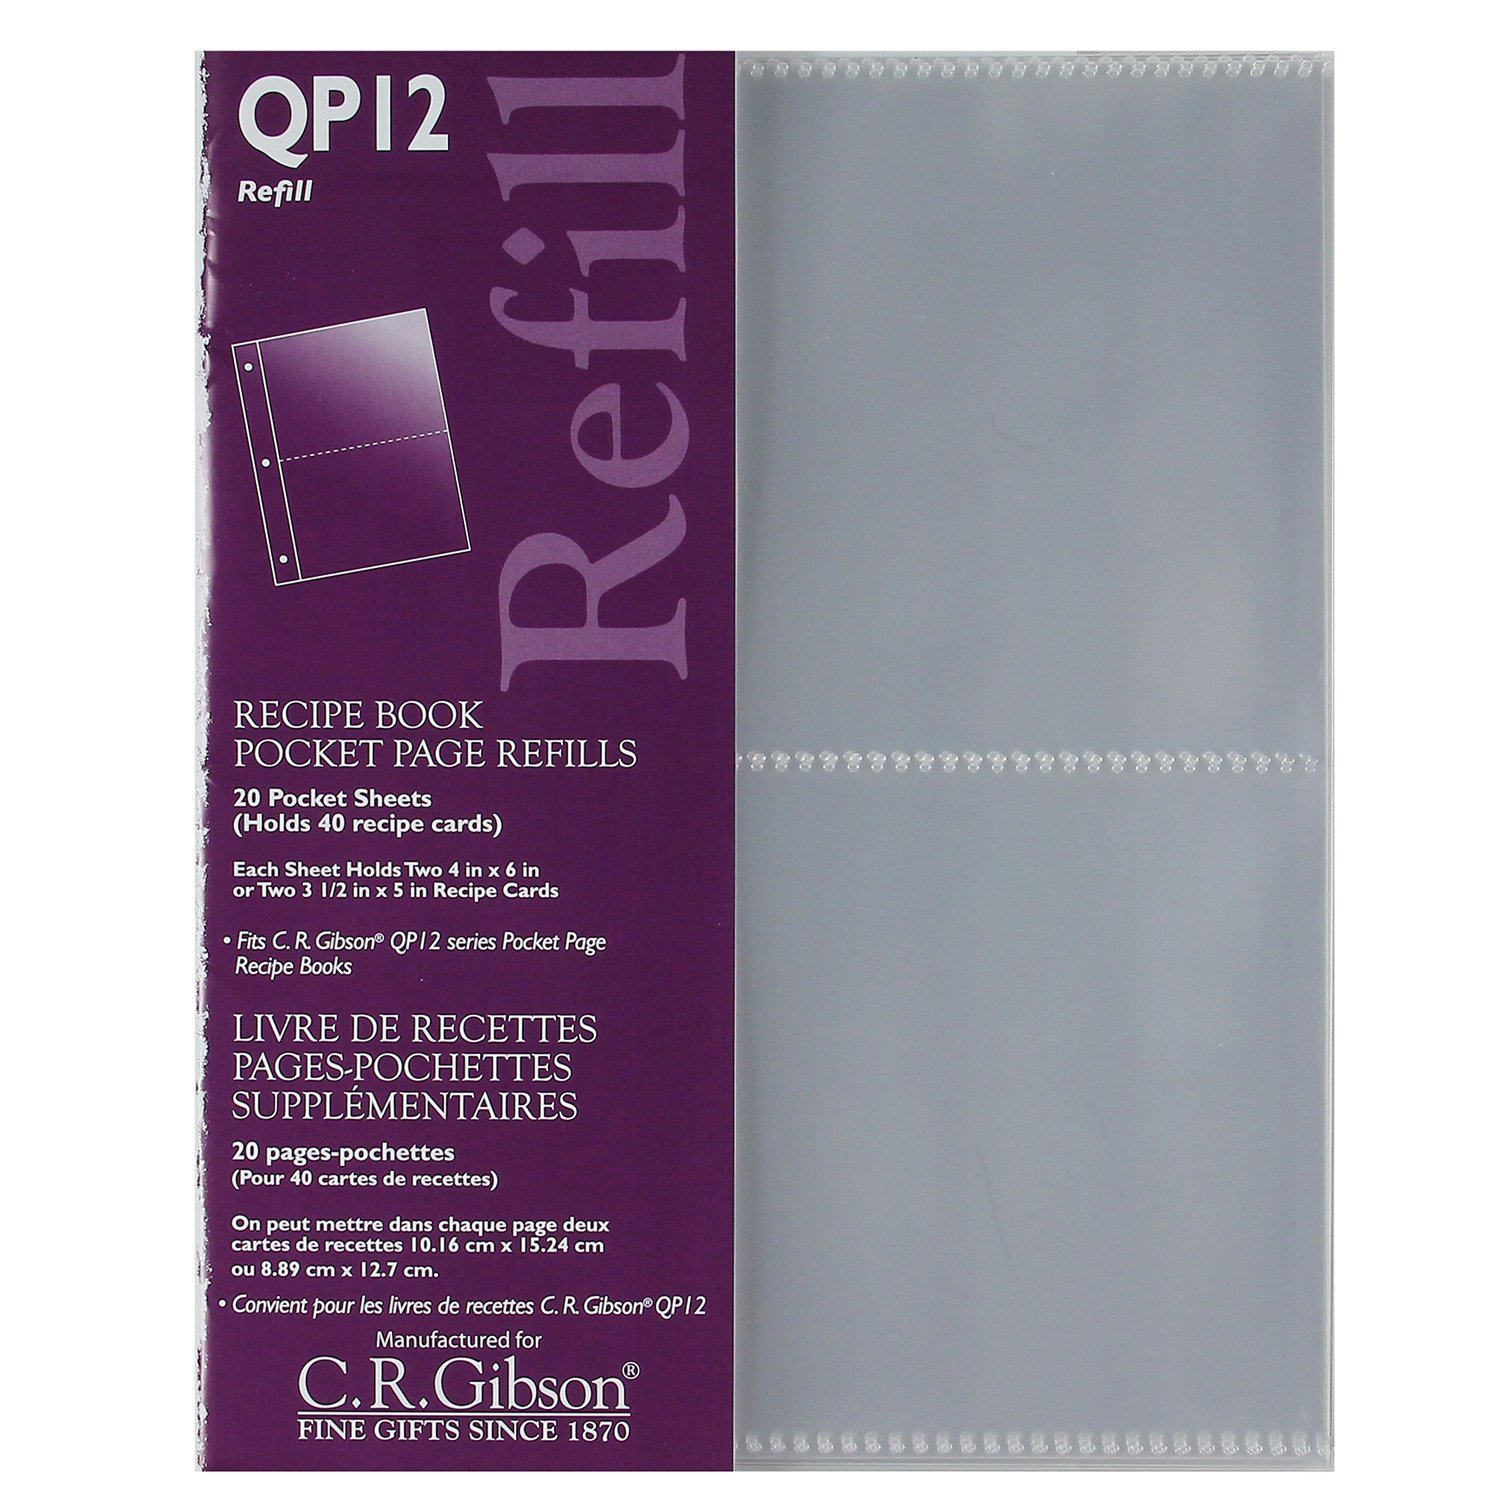 CR Gibson QP-12 Small Recipe Book Pocket Page Refill 20 sheets C.R. Gibson BHBS0519S4982